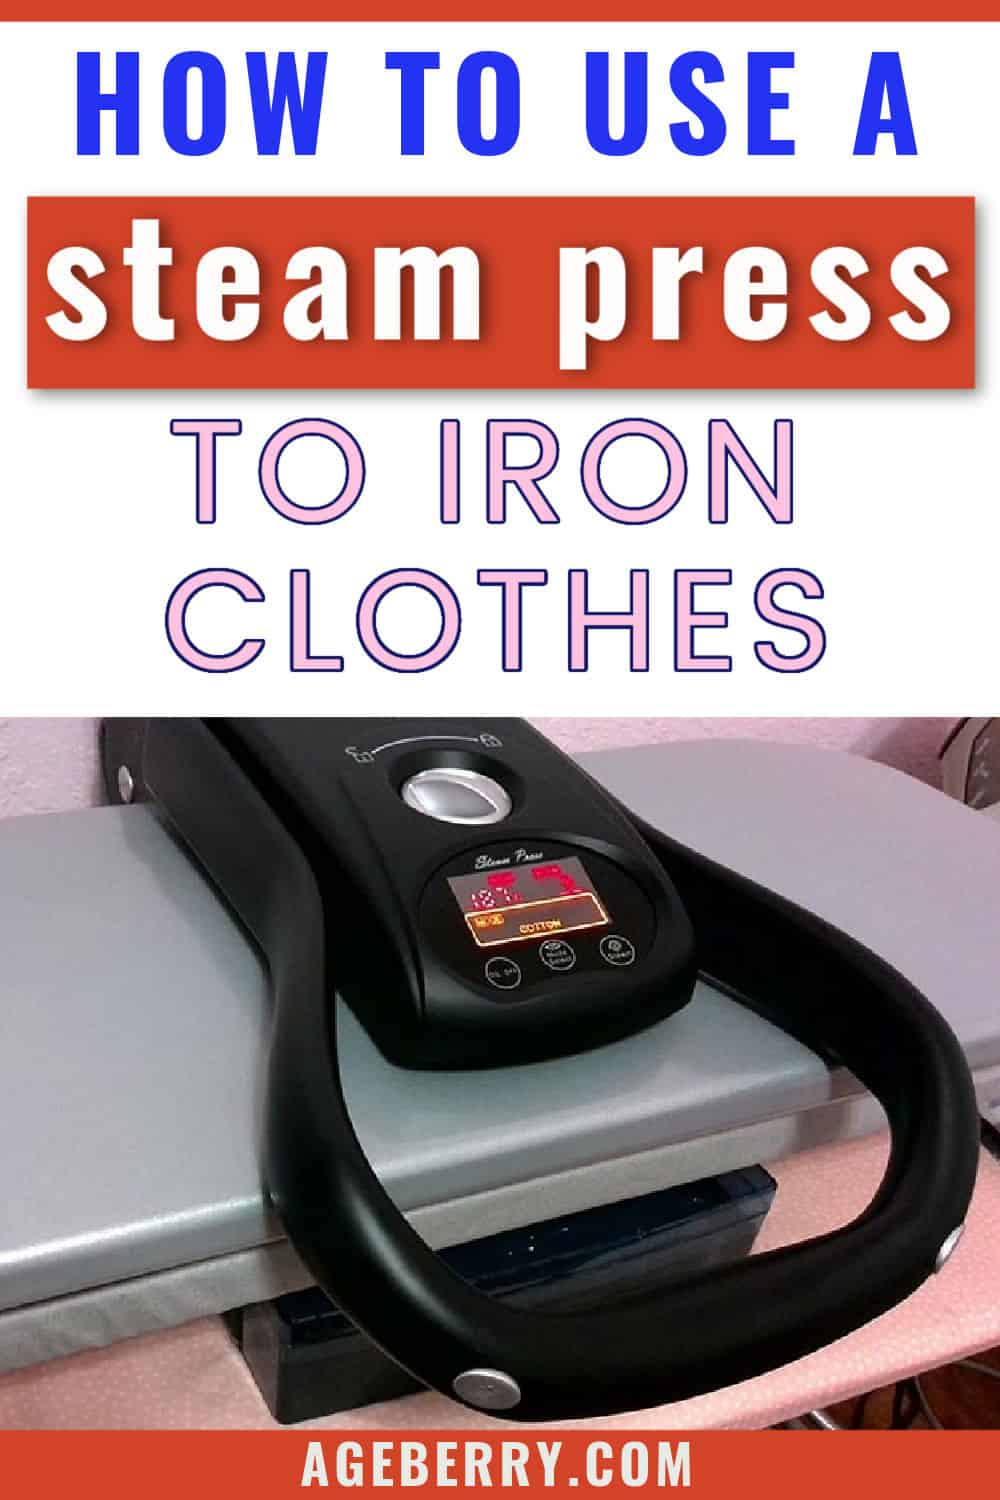 Review of a Singer Intelligent Steam Press